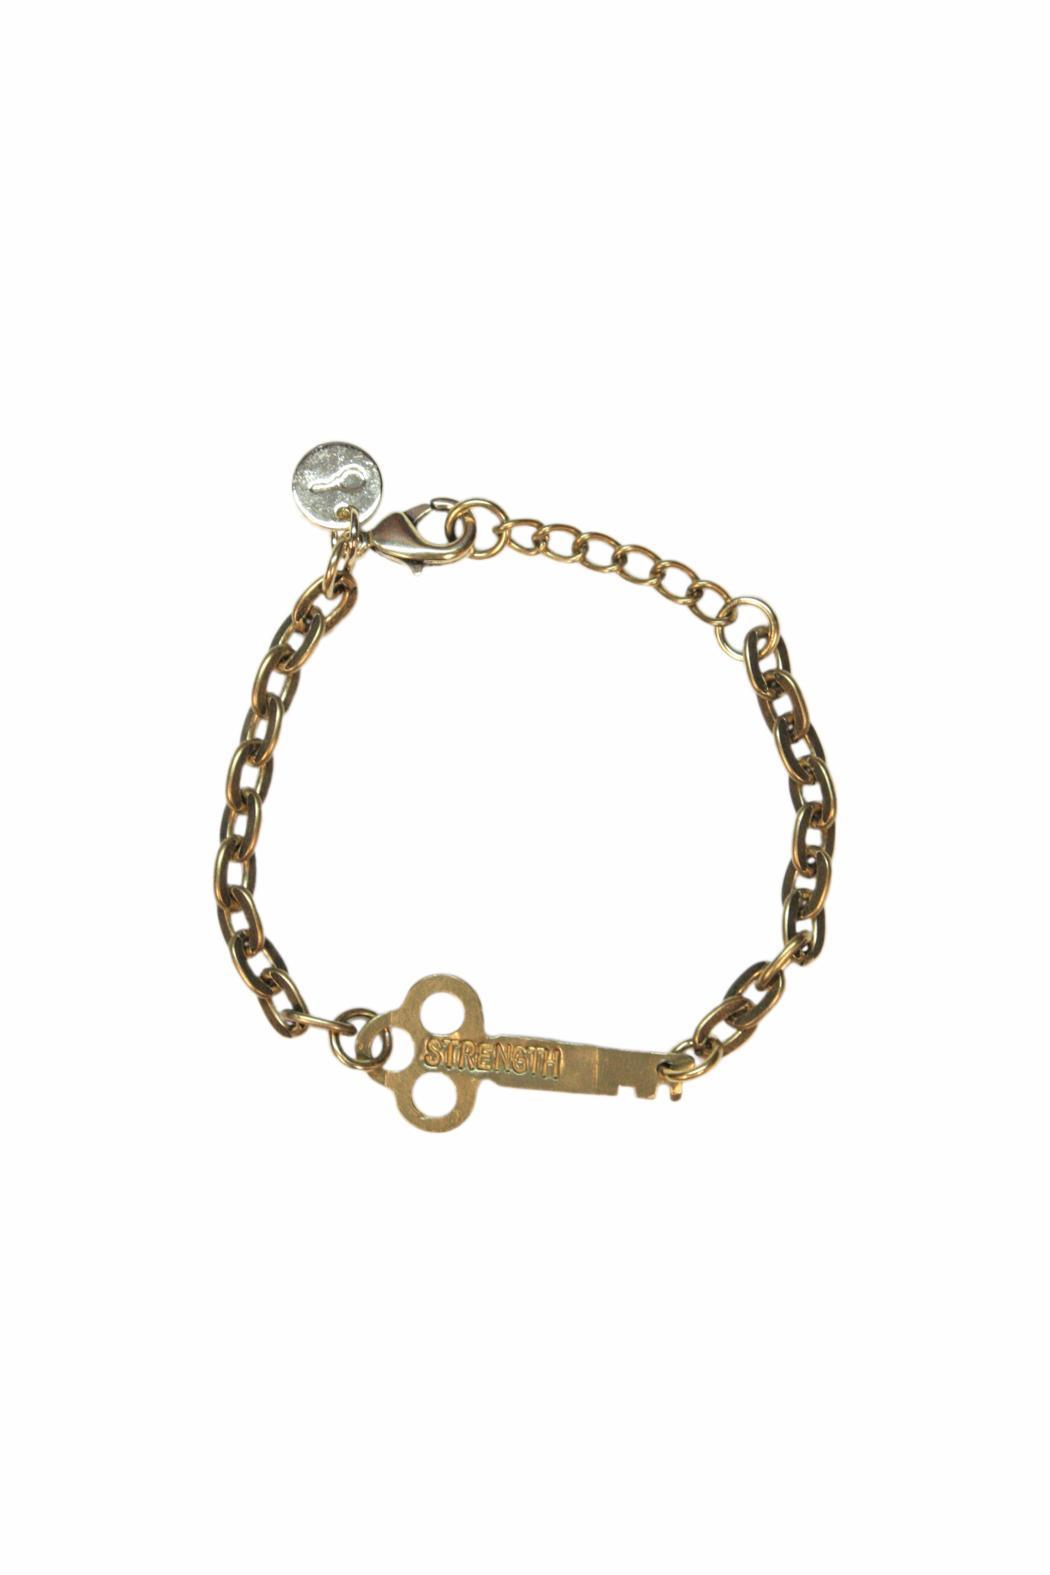 The Giving Key Never Ending Bracelet From Kentucky By Picket Fence